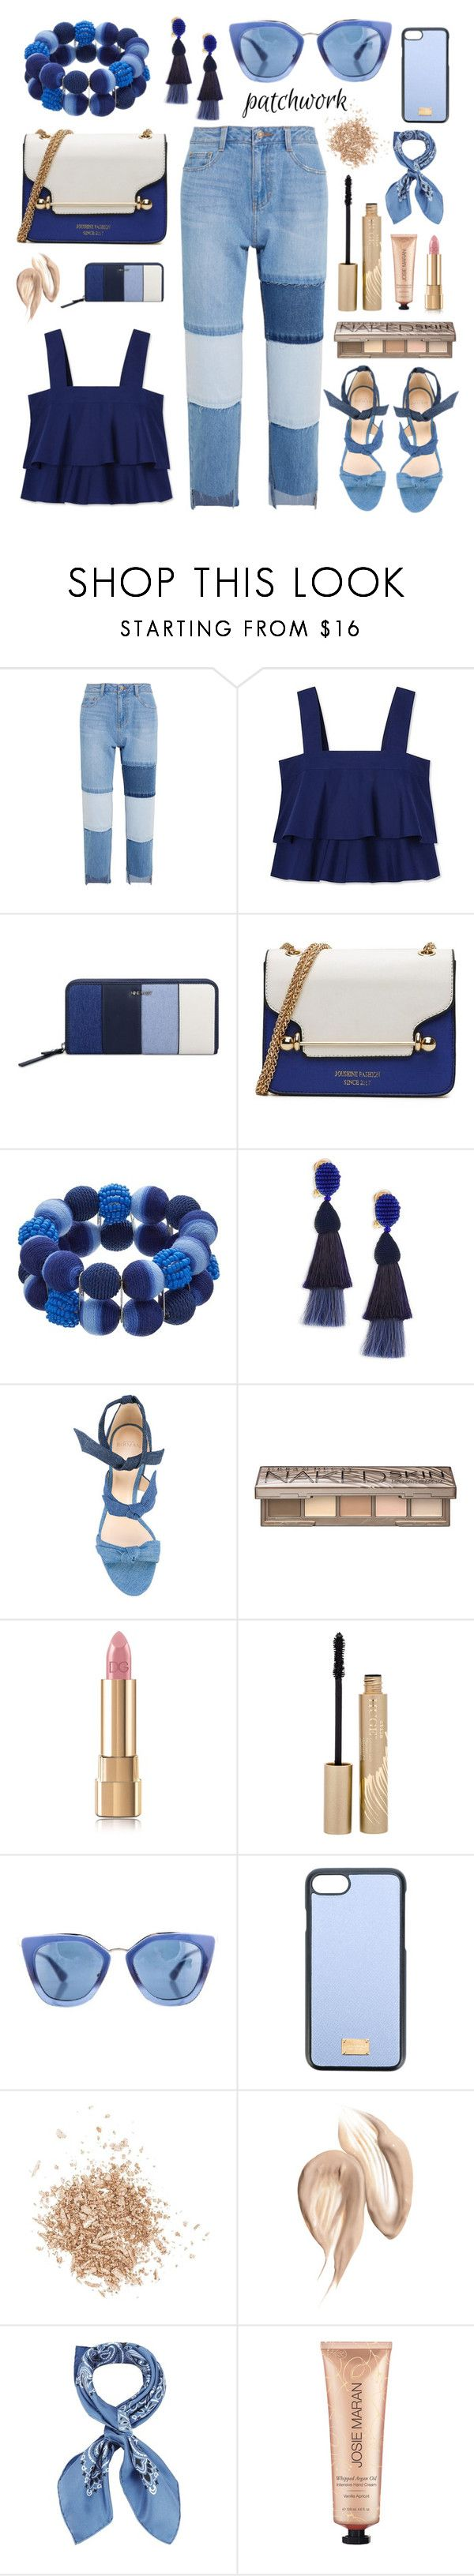 """Senza titolo #6481"" by waikiki24 ❤ liked on Polyvore featuring Steve J & Yoni P, Tory Burch, Nine West, Oscar de la Renta, Alexandre Birman, Urban Decay, Dolce&Gabbana, Stila, Prada and Topshop"